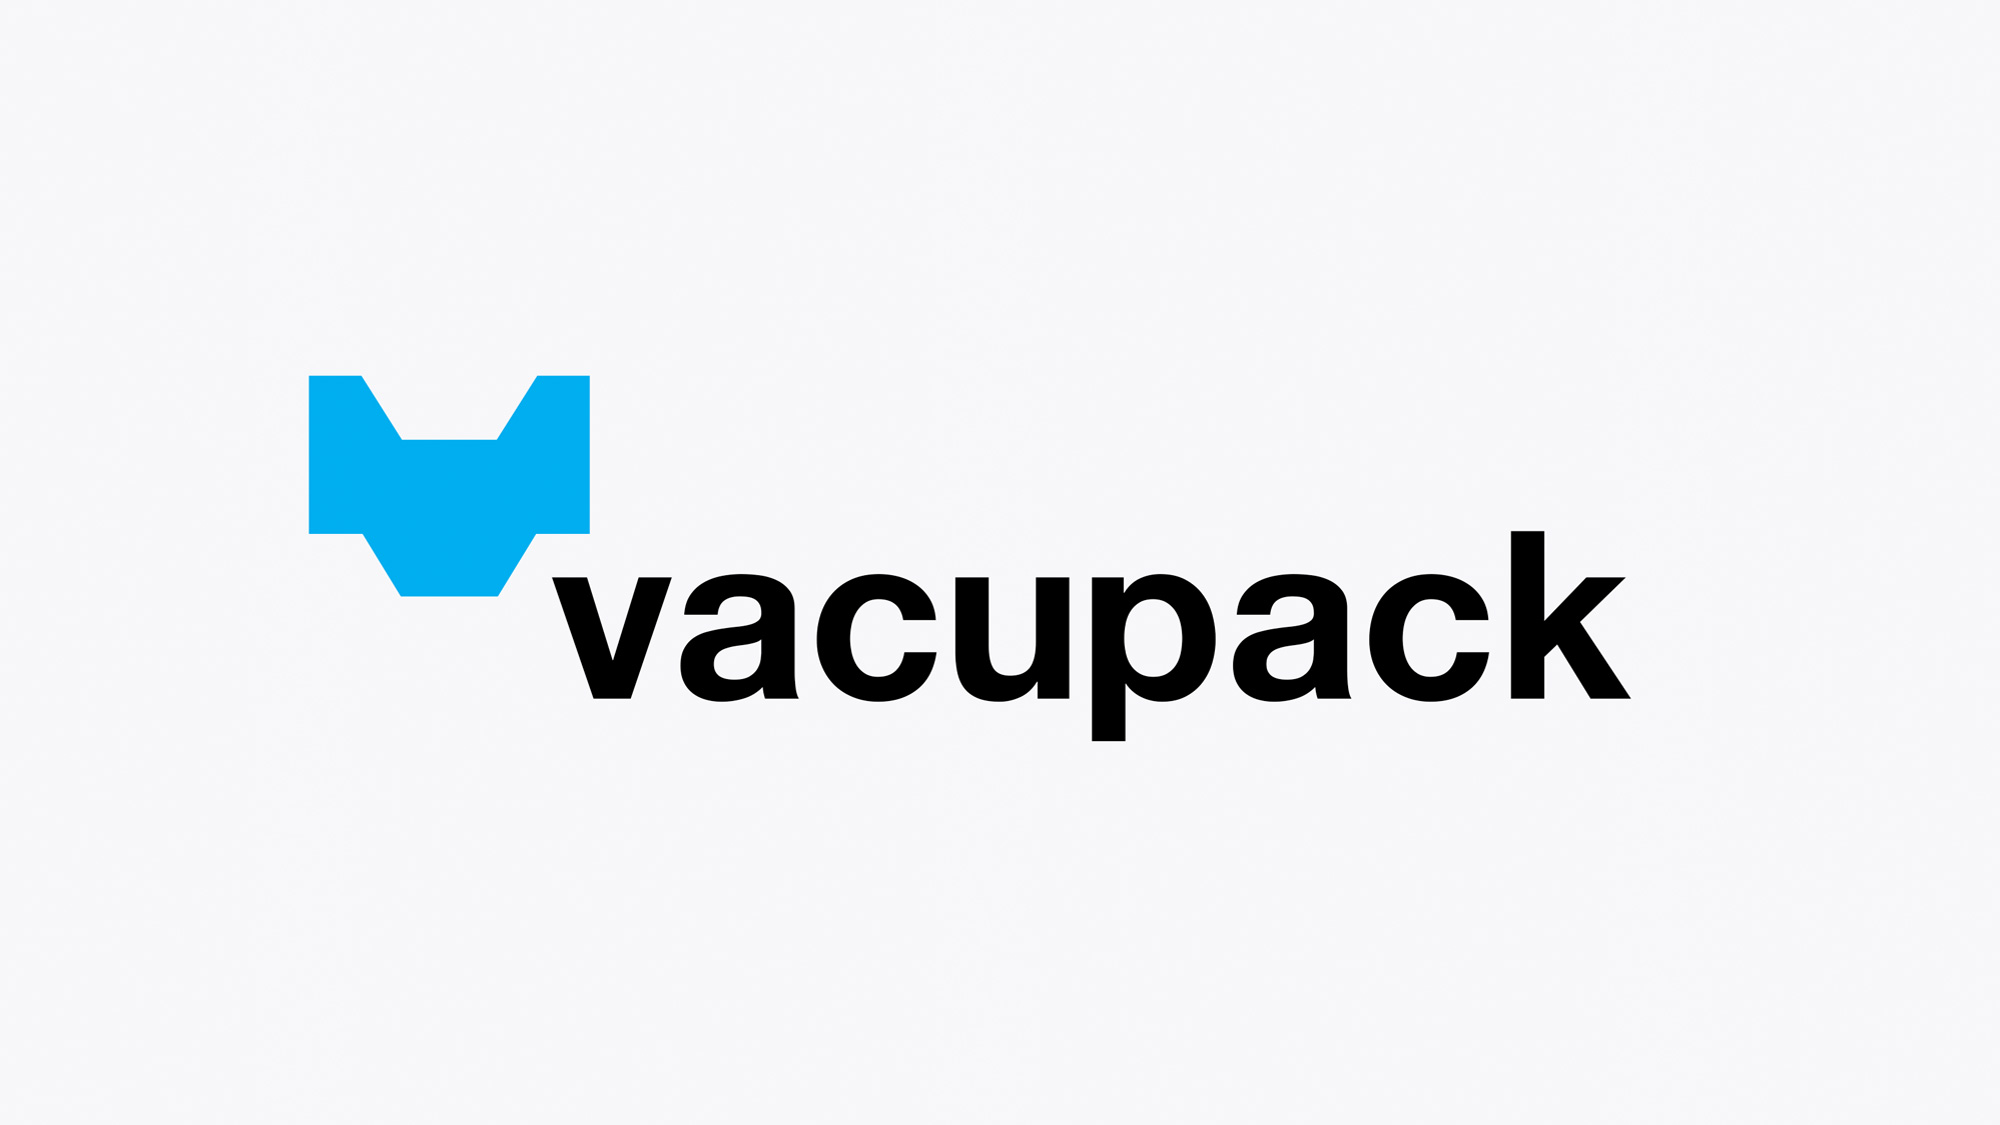 Vacupack brandmark with white background